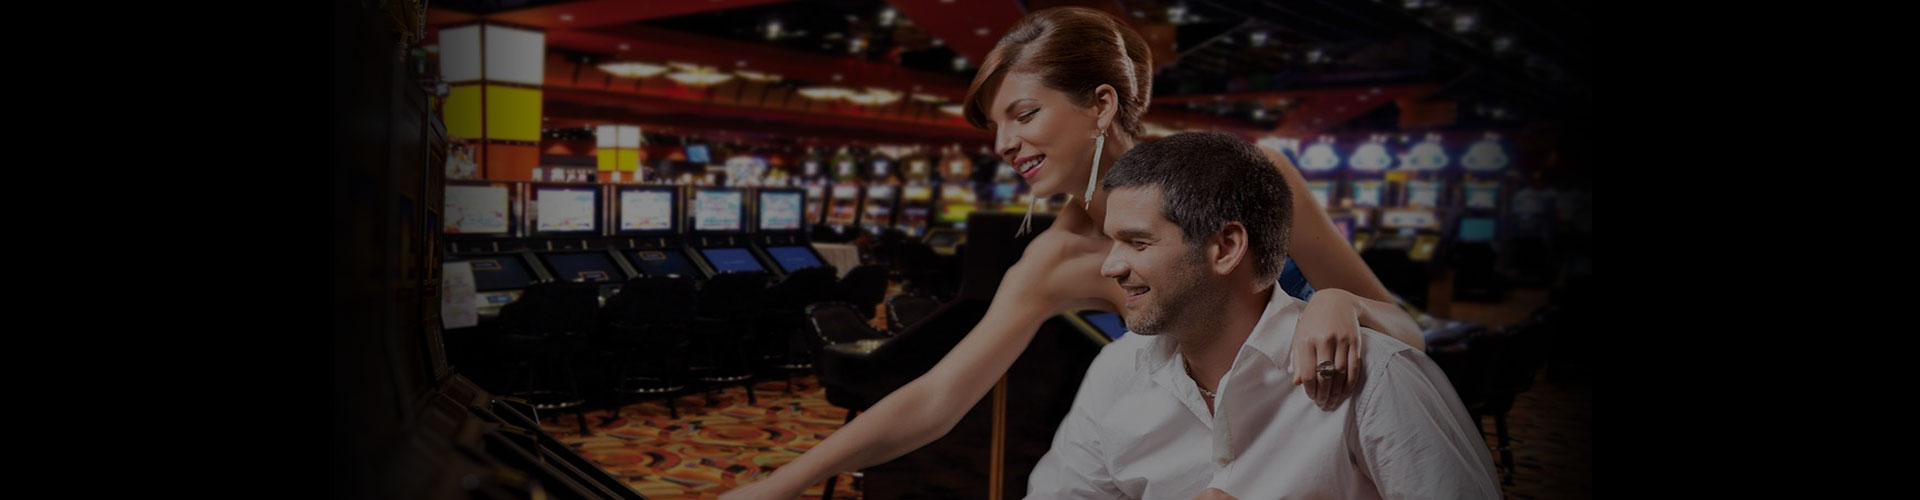 online casino betrug on line casino